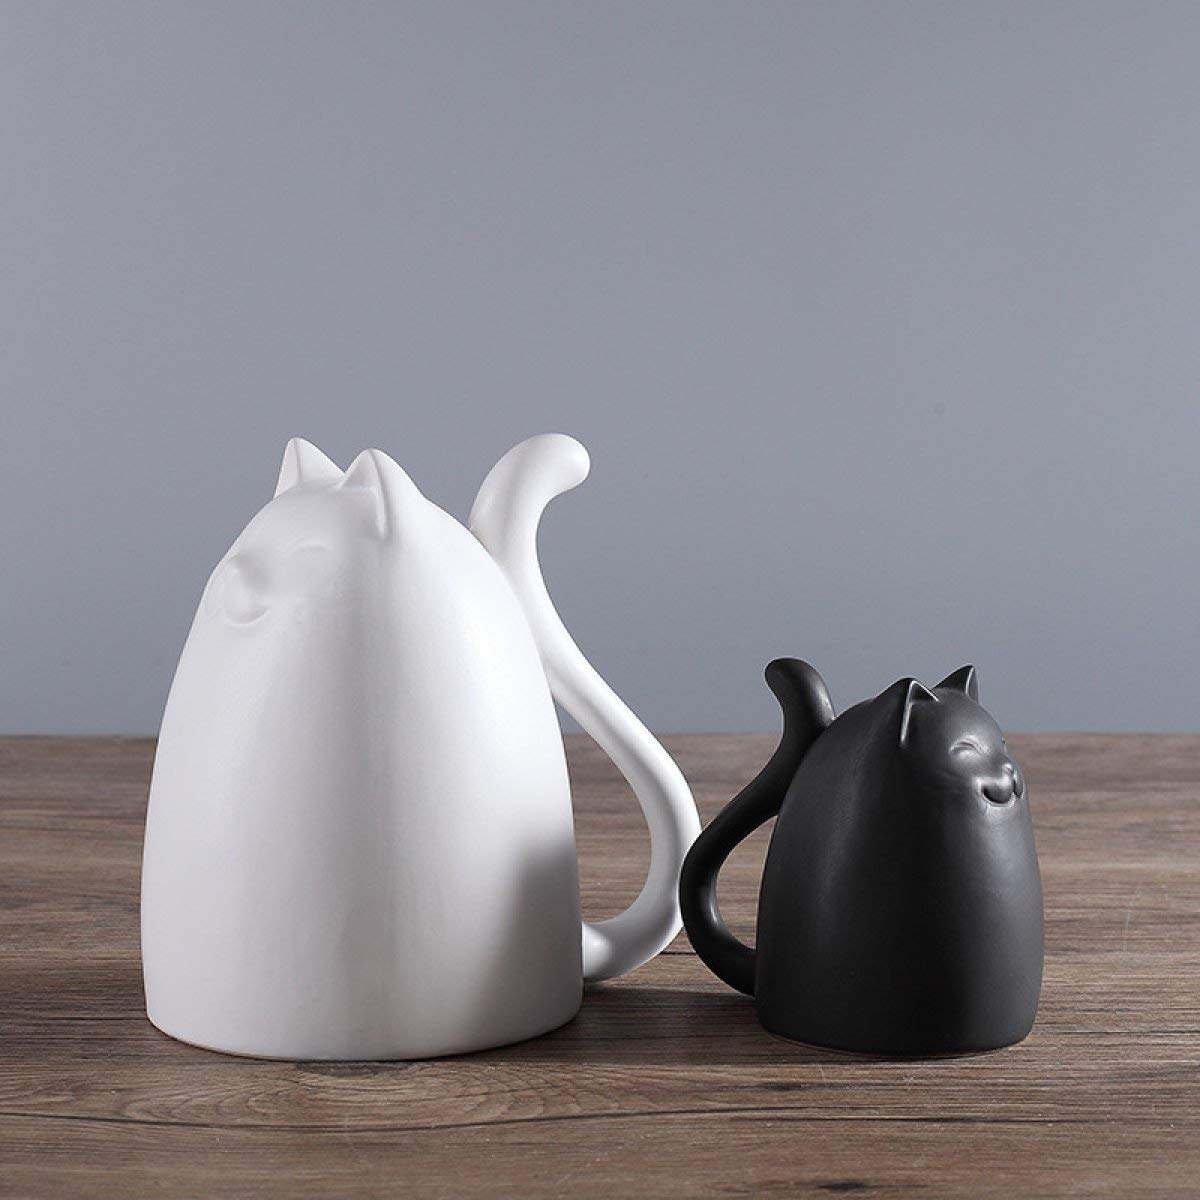 Small black and white cat ornaments